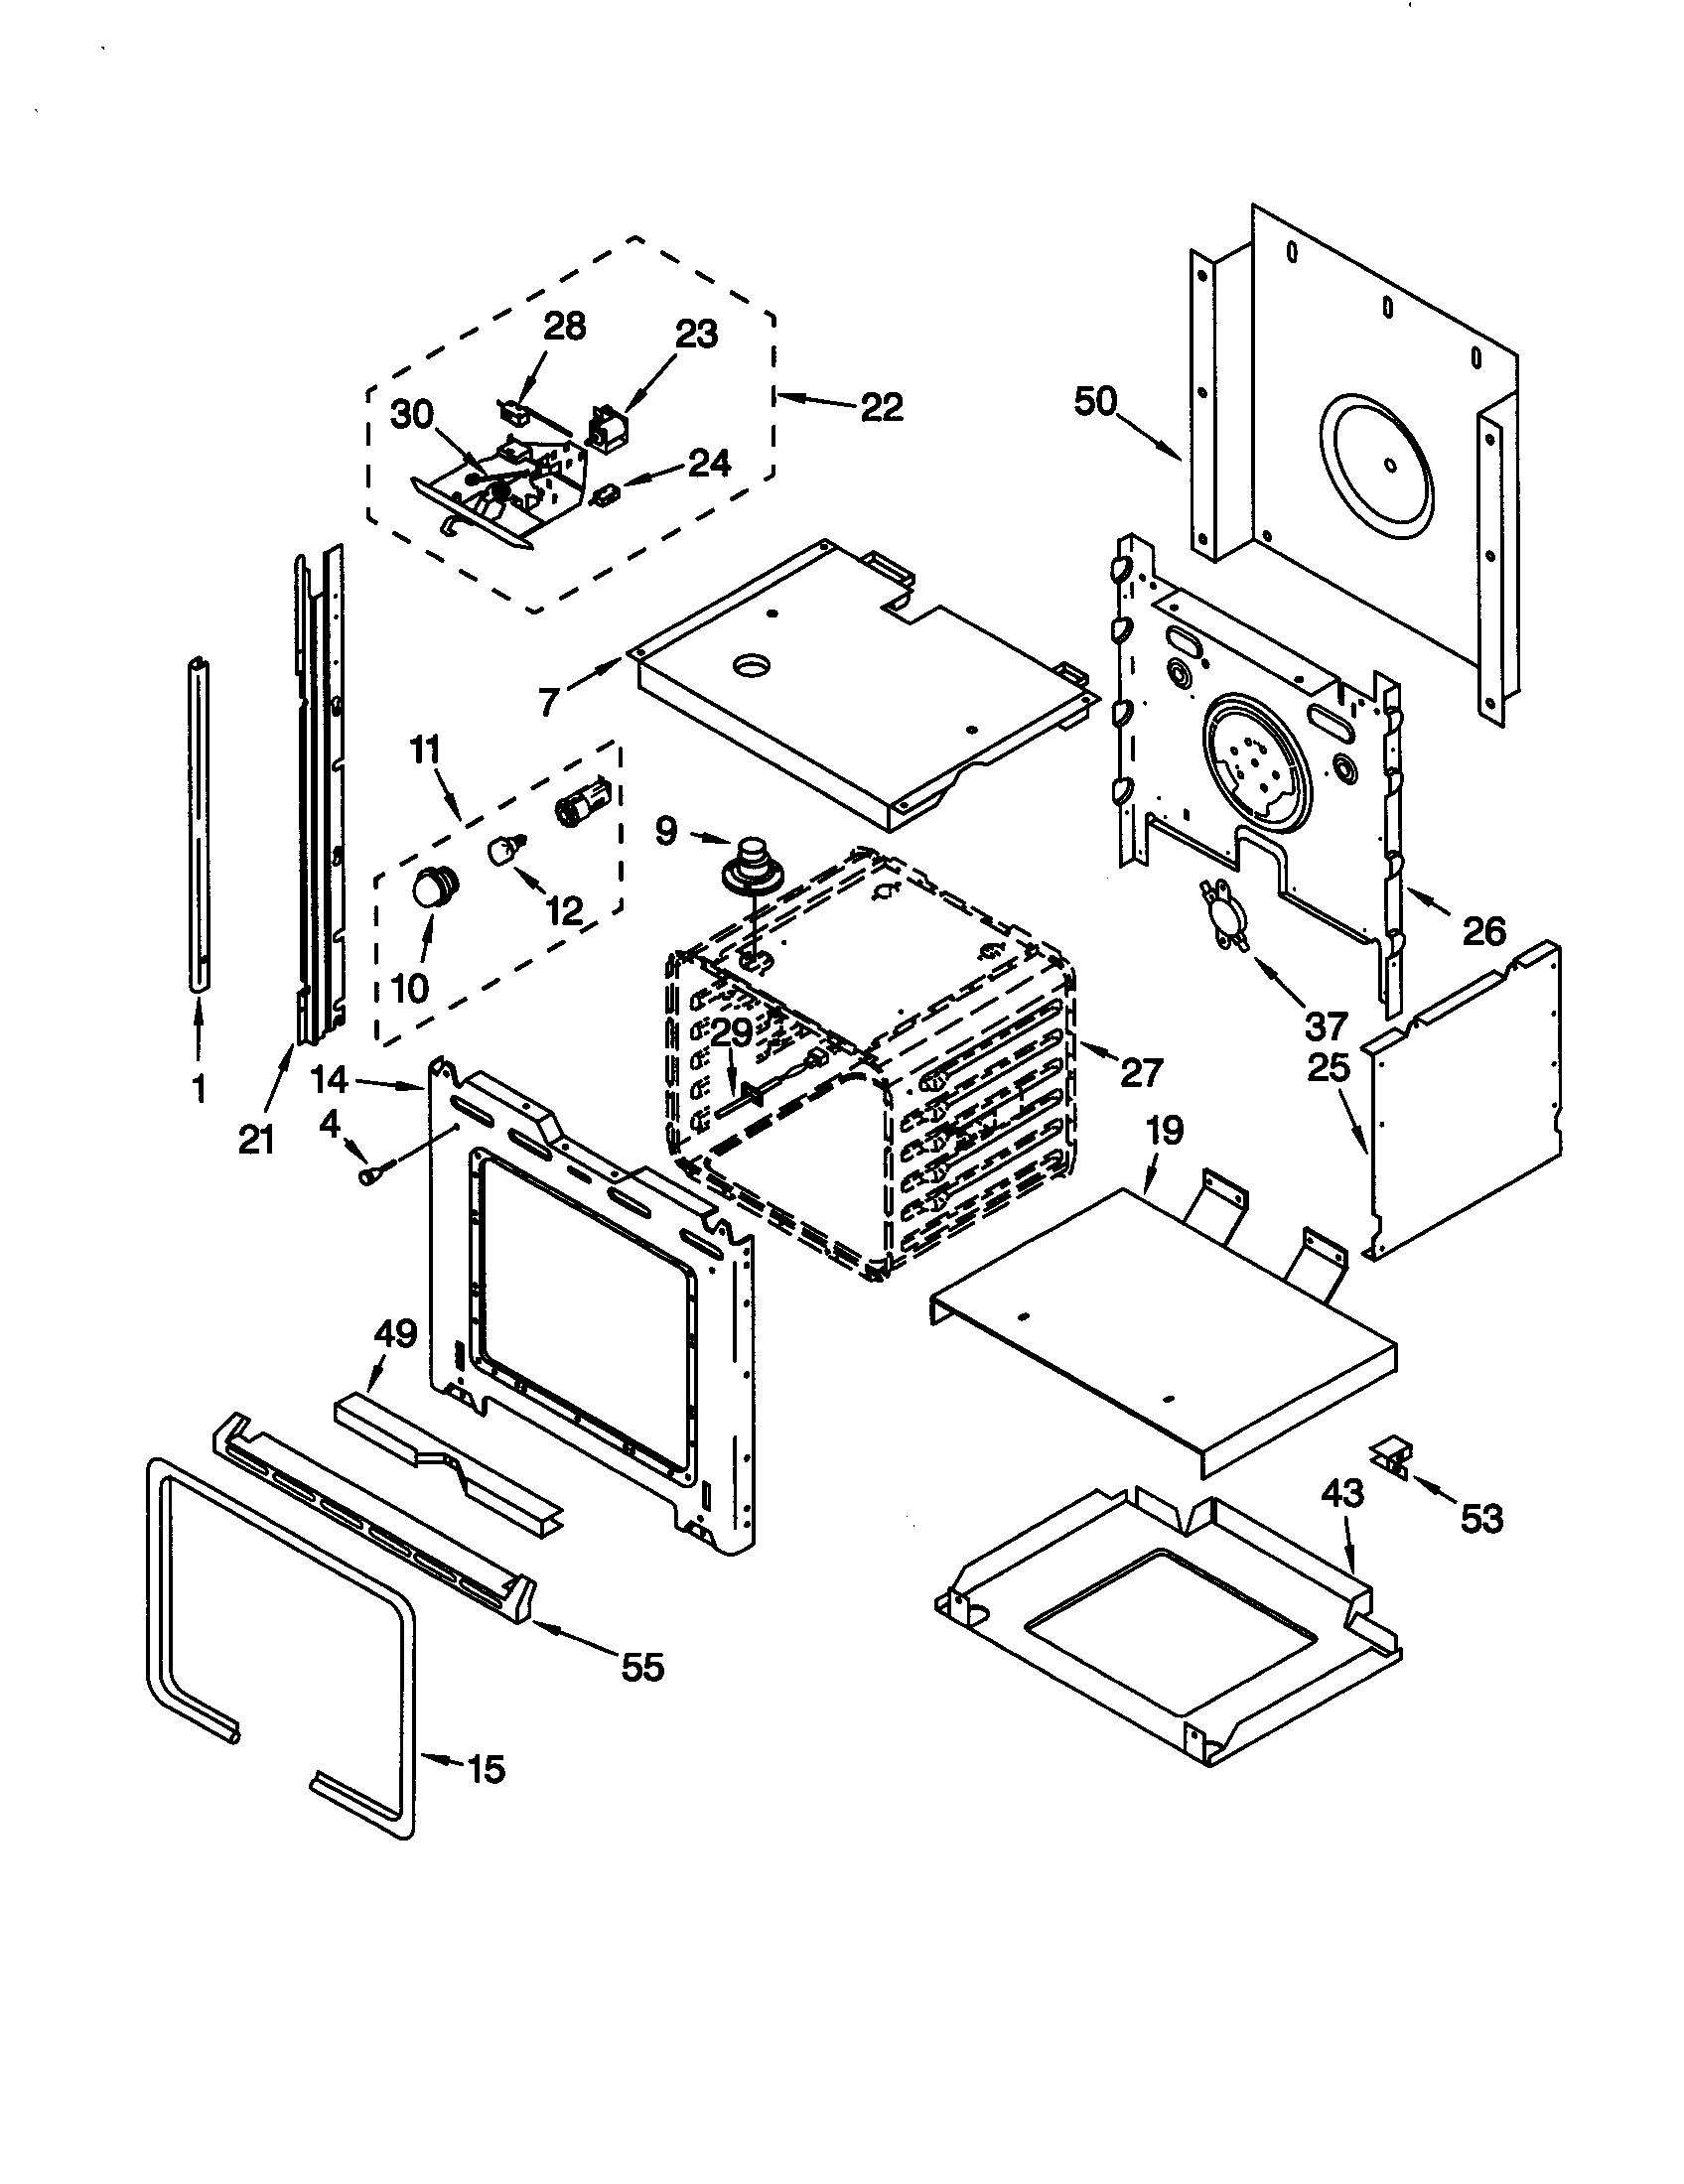 Whirlpool appliance parts whirlpool bottom part of oven 100 whirlpool electric stove parts diagram pa pooptronica